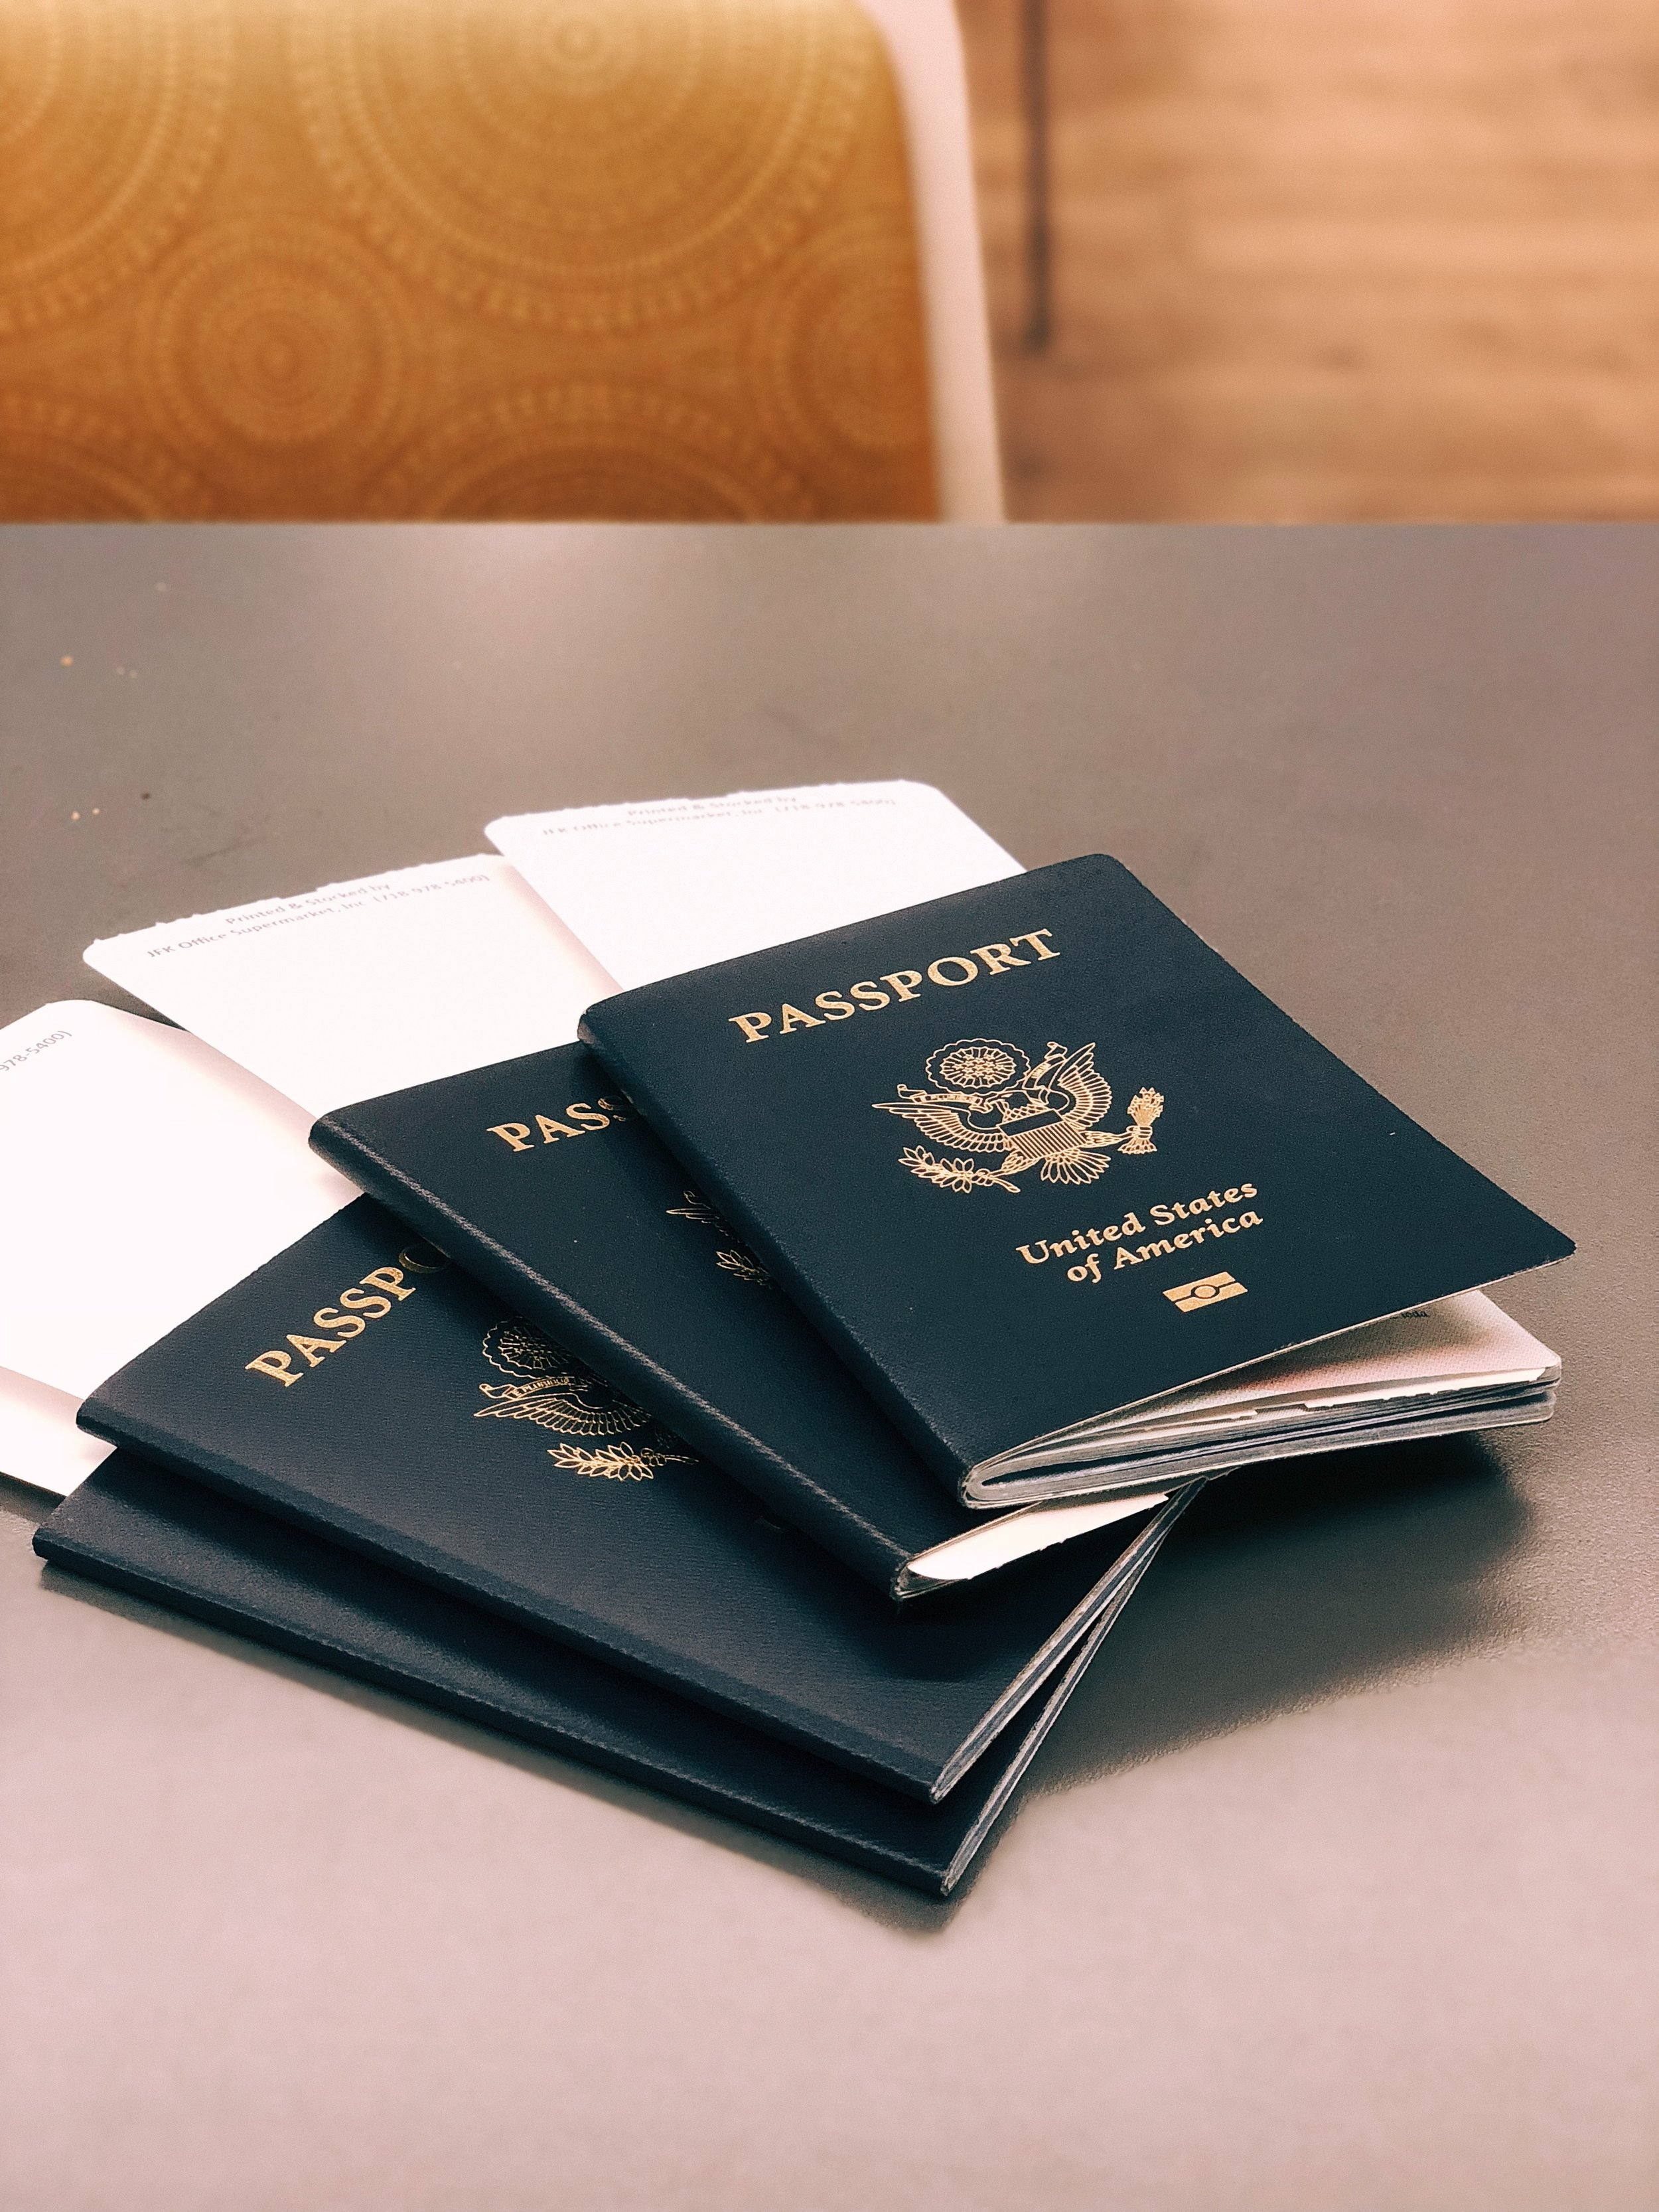 If you lose your passport while flying, take a deep breath, and then follow these steps.